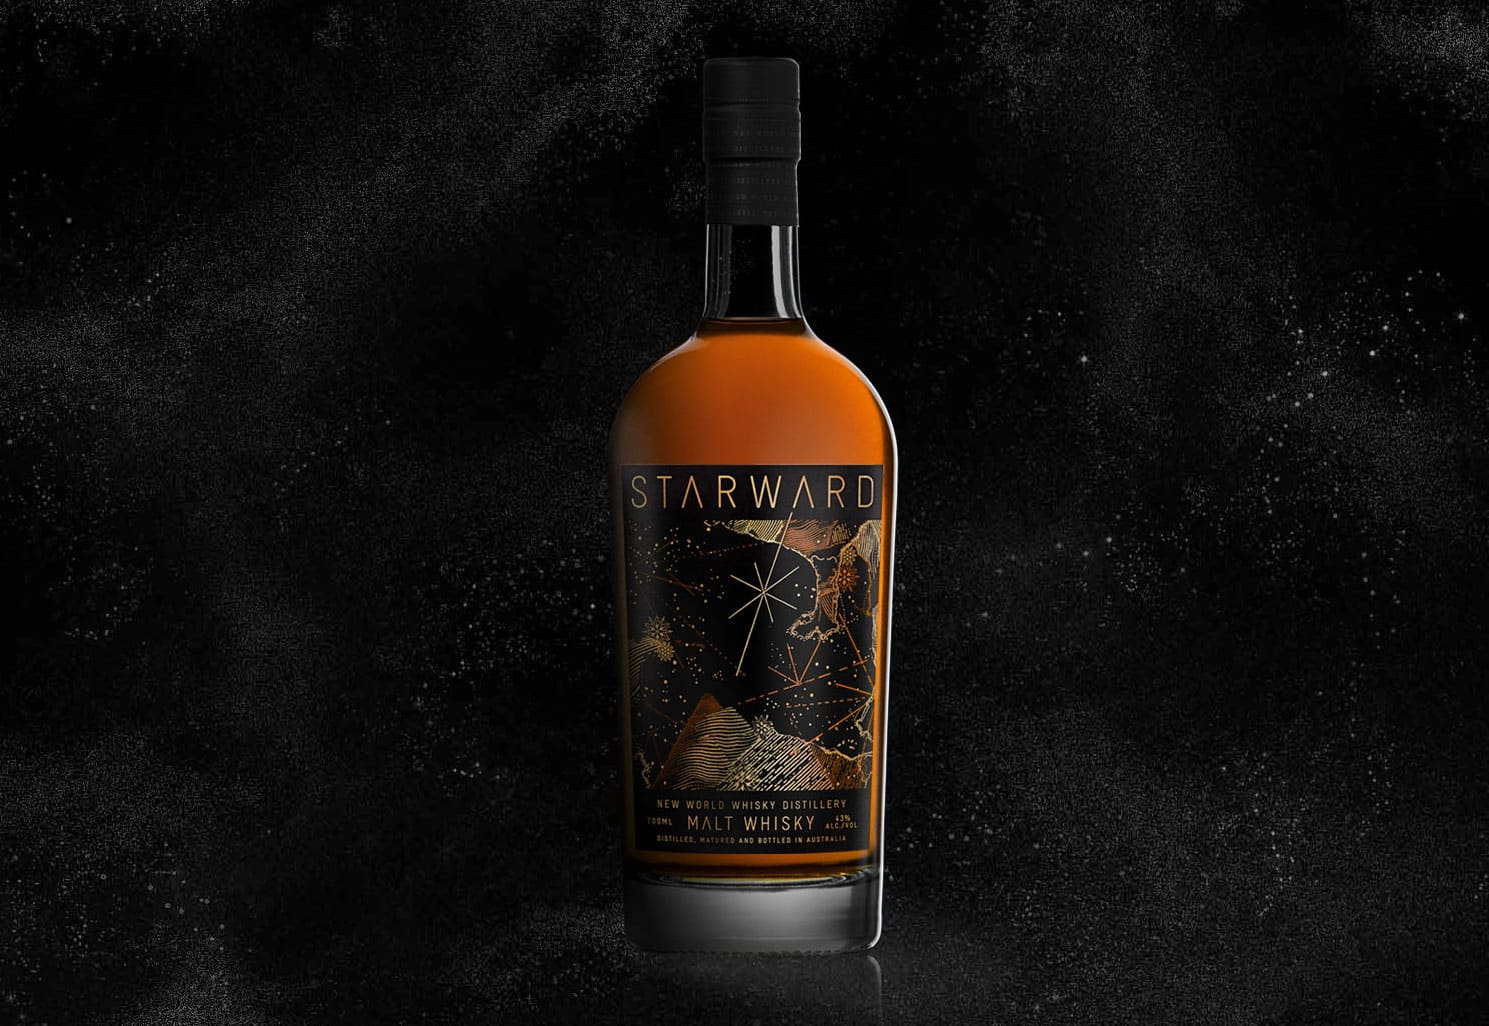 Starward Malt Whisky